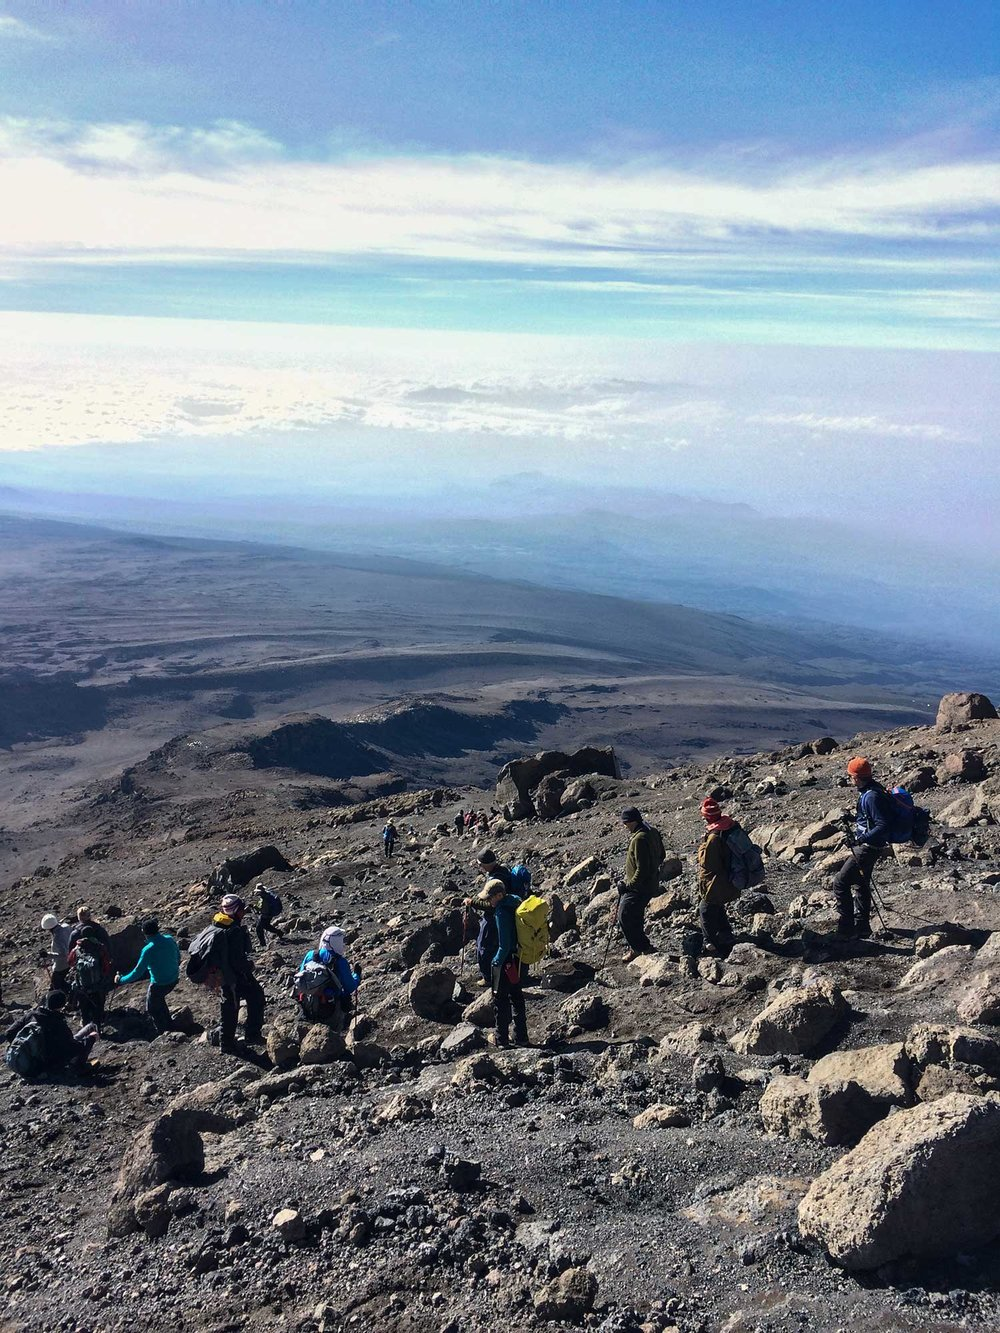 Kilimanjaro climbers descending to Barufu Camp via switchbacks.